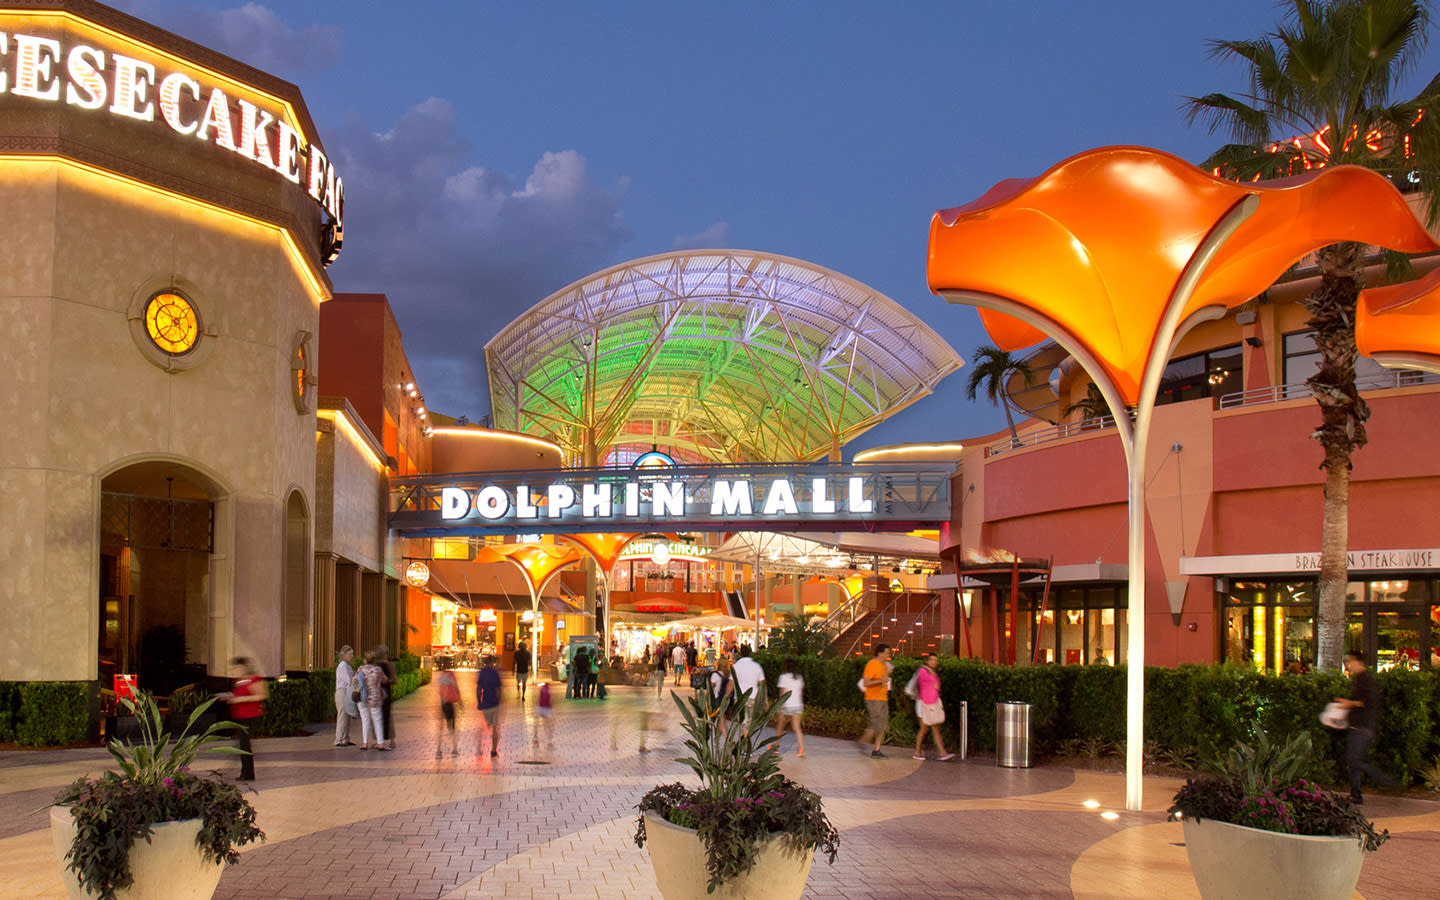 Dolphin Mall in Airport Area, FL on